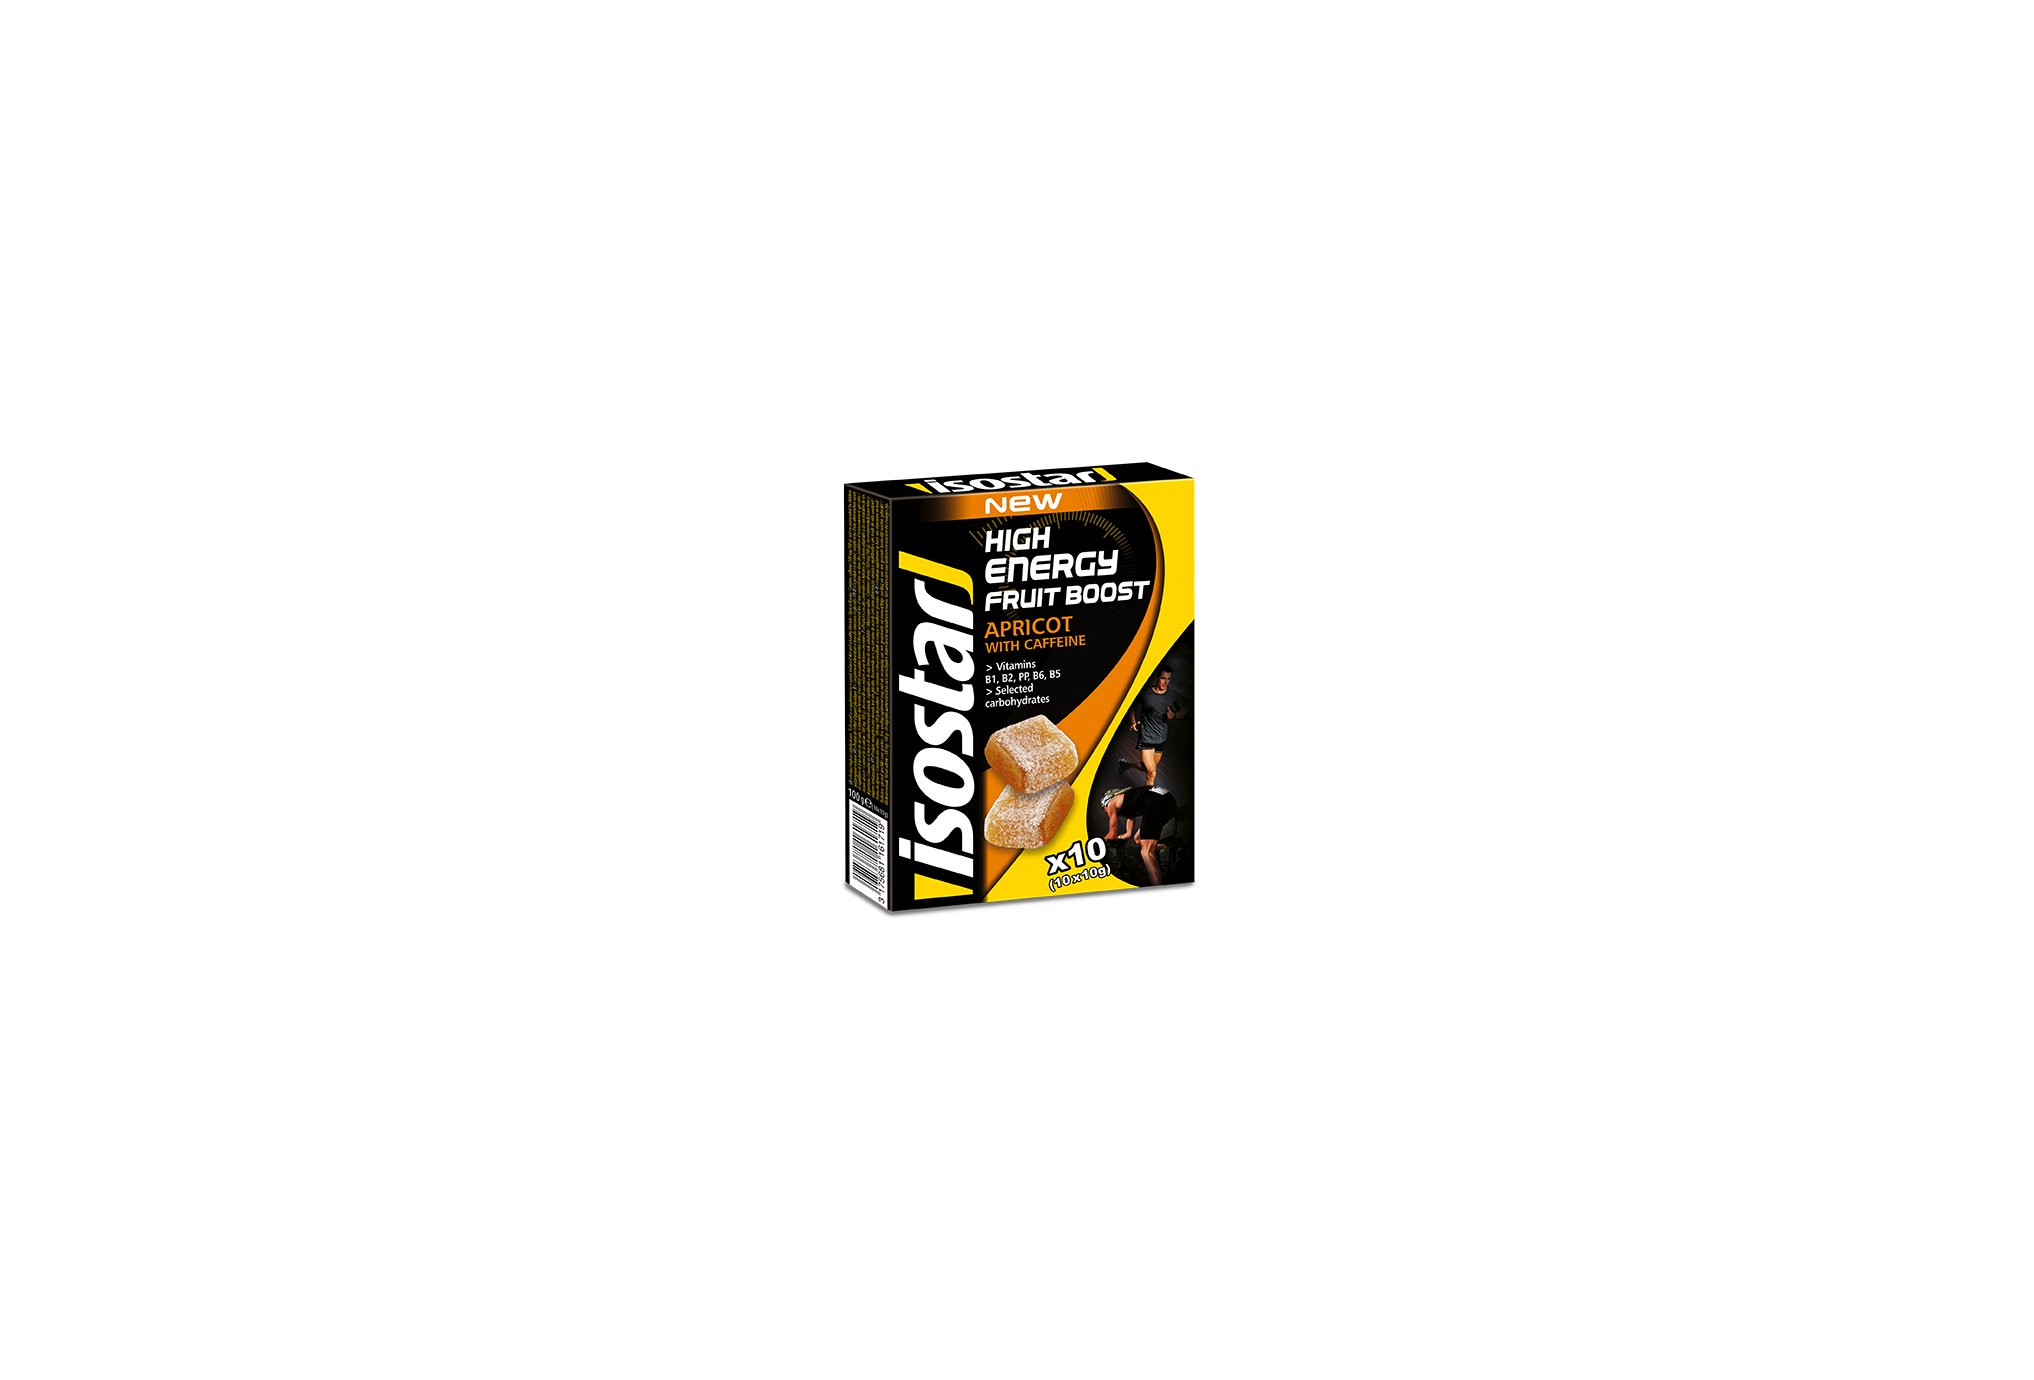 Isostar High Energy Fruit Boost - Abricot Diététique Barres